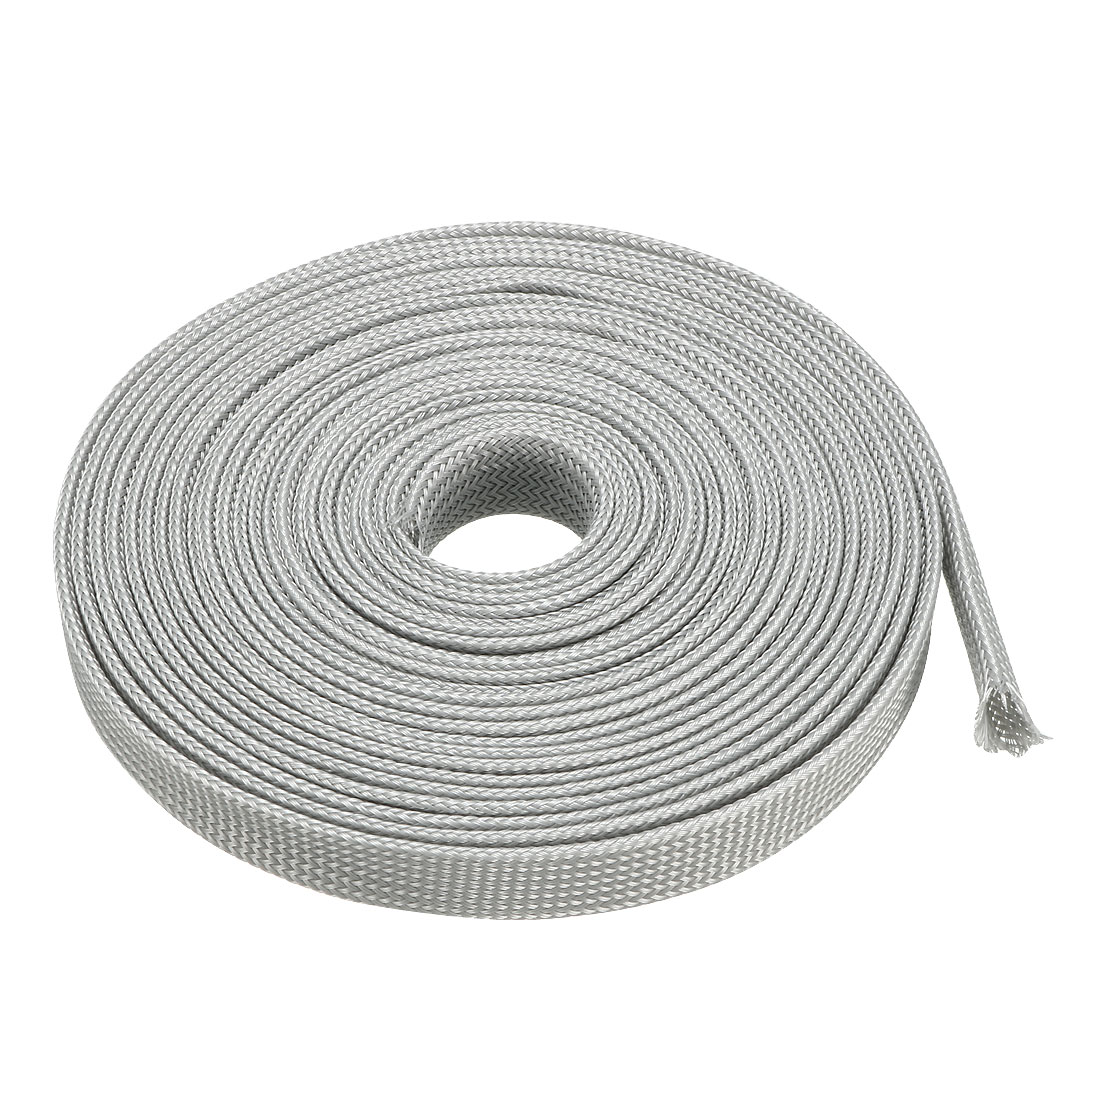 16mm Dia Tight PET Expandable Sleeving Cable Wire Wrap Sheath Gray 5M